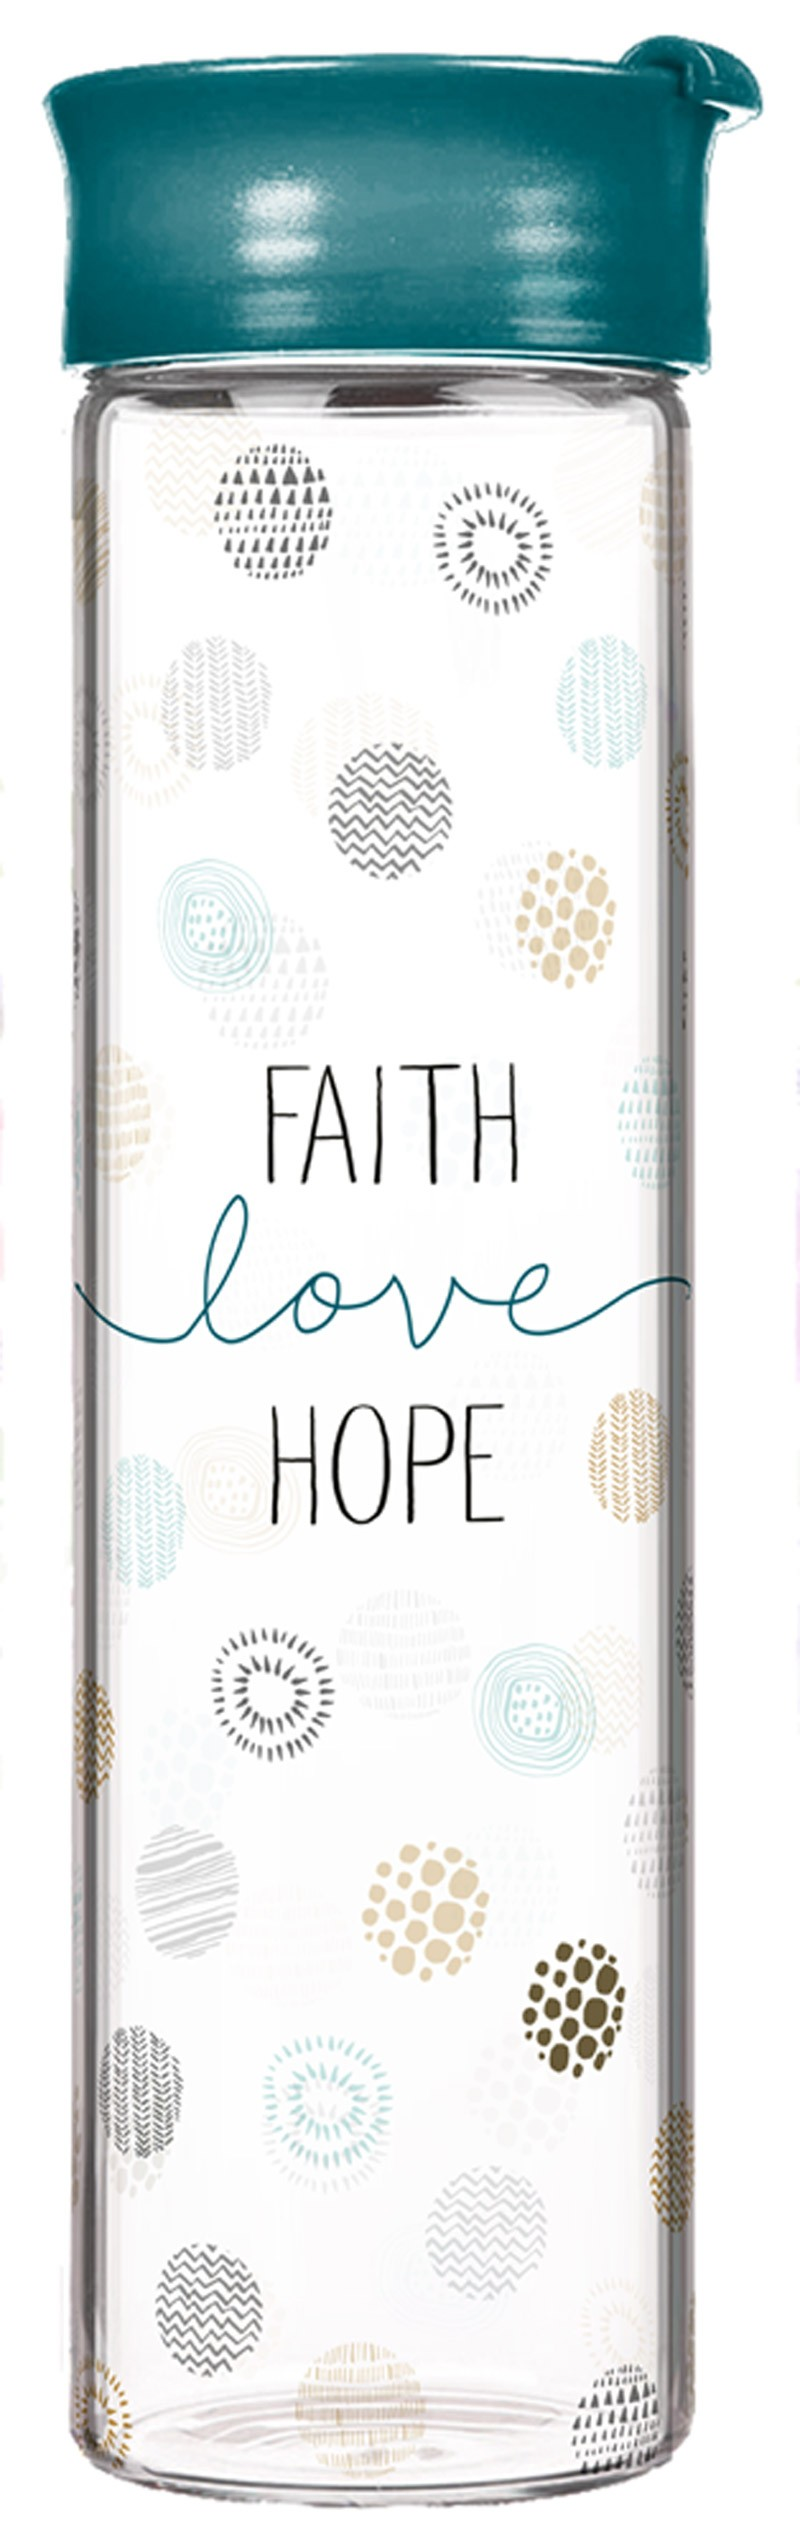 "Glasflasche ""Faith-Love-Hope"""